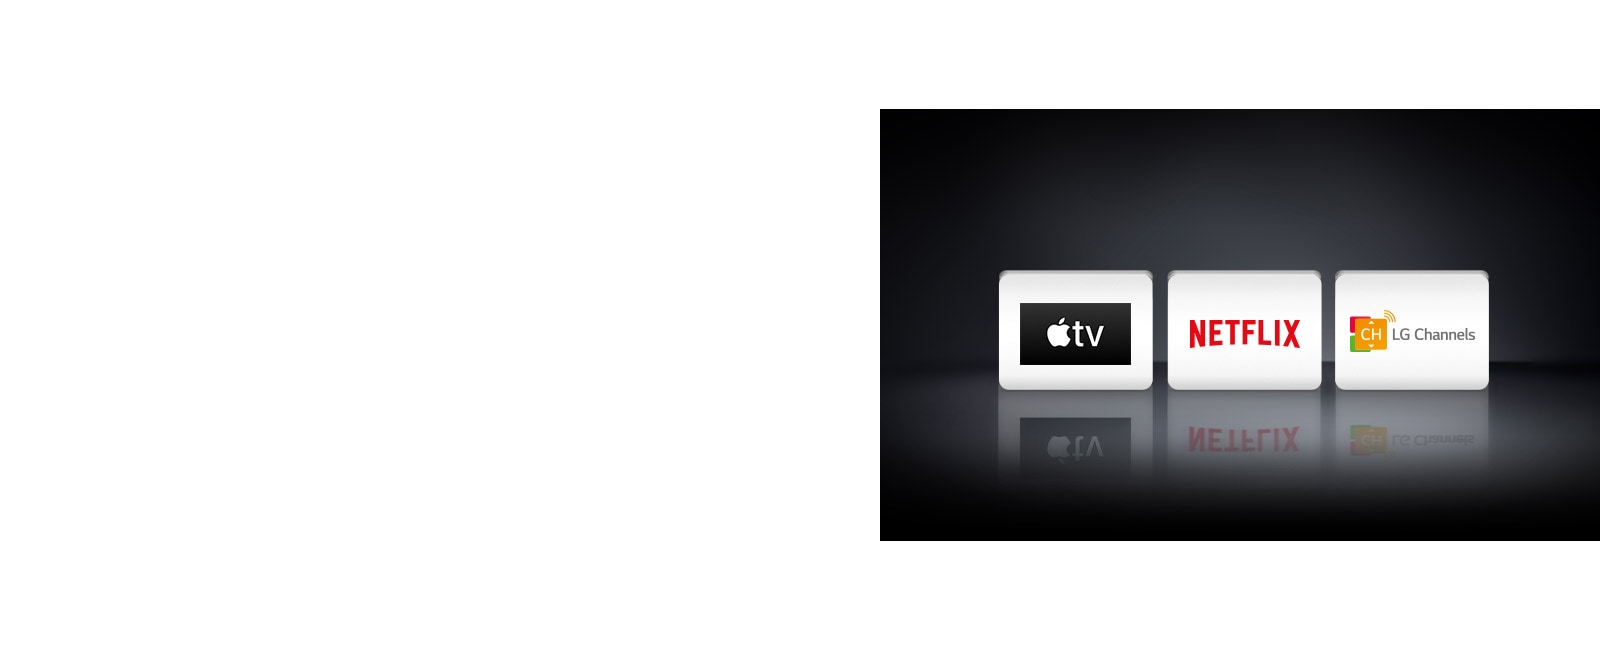 Three app logos shown from left to right: Apple TV, Netflix and LG Channels.